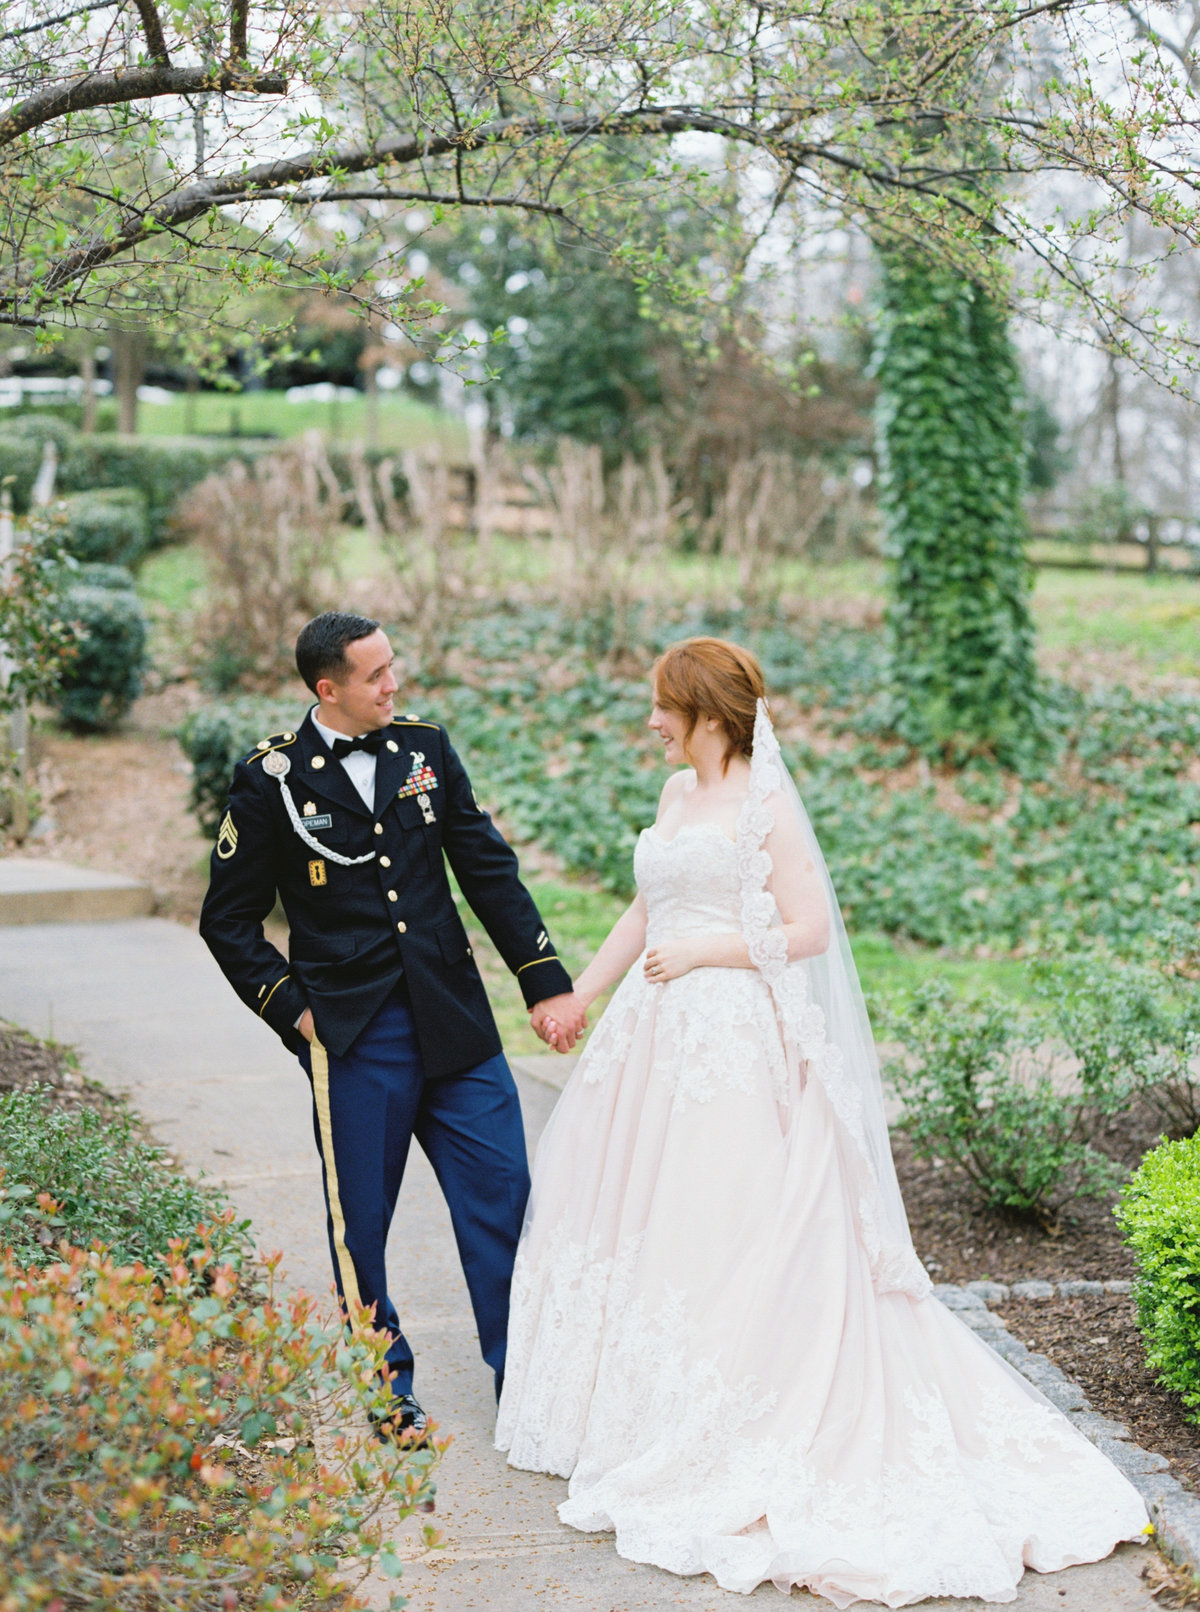 Zola + Austin Atlanta Peachtree Christian Chastain Horse Park Wedding - Cassie Valente Photography 0178